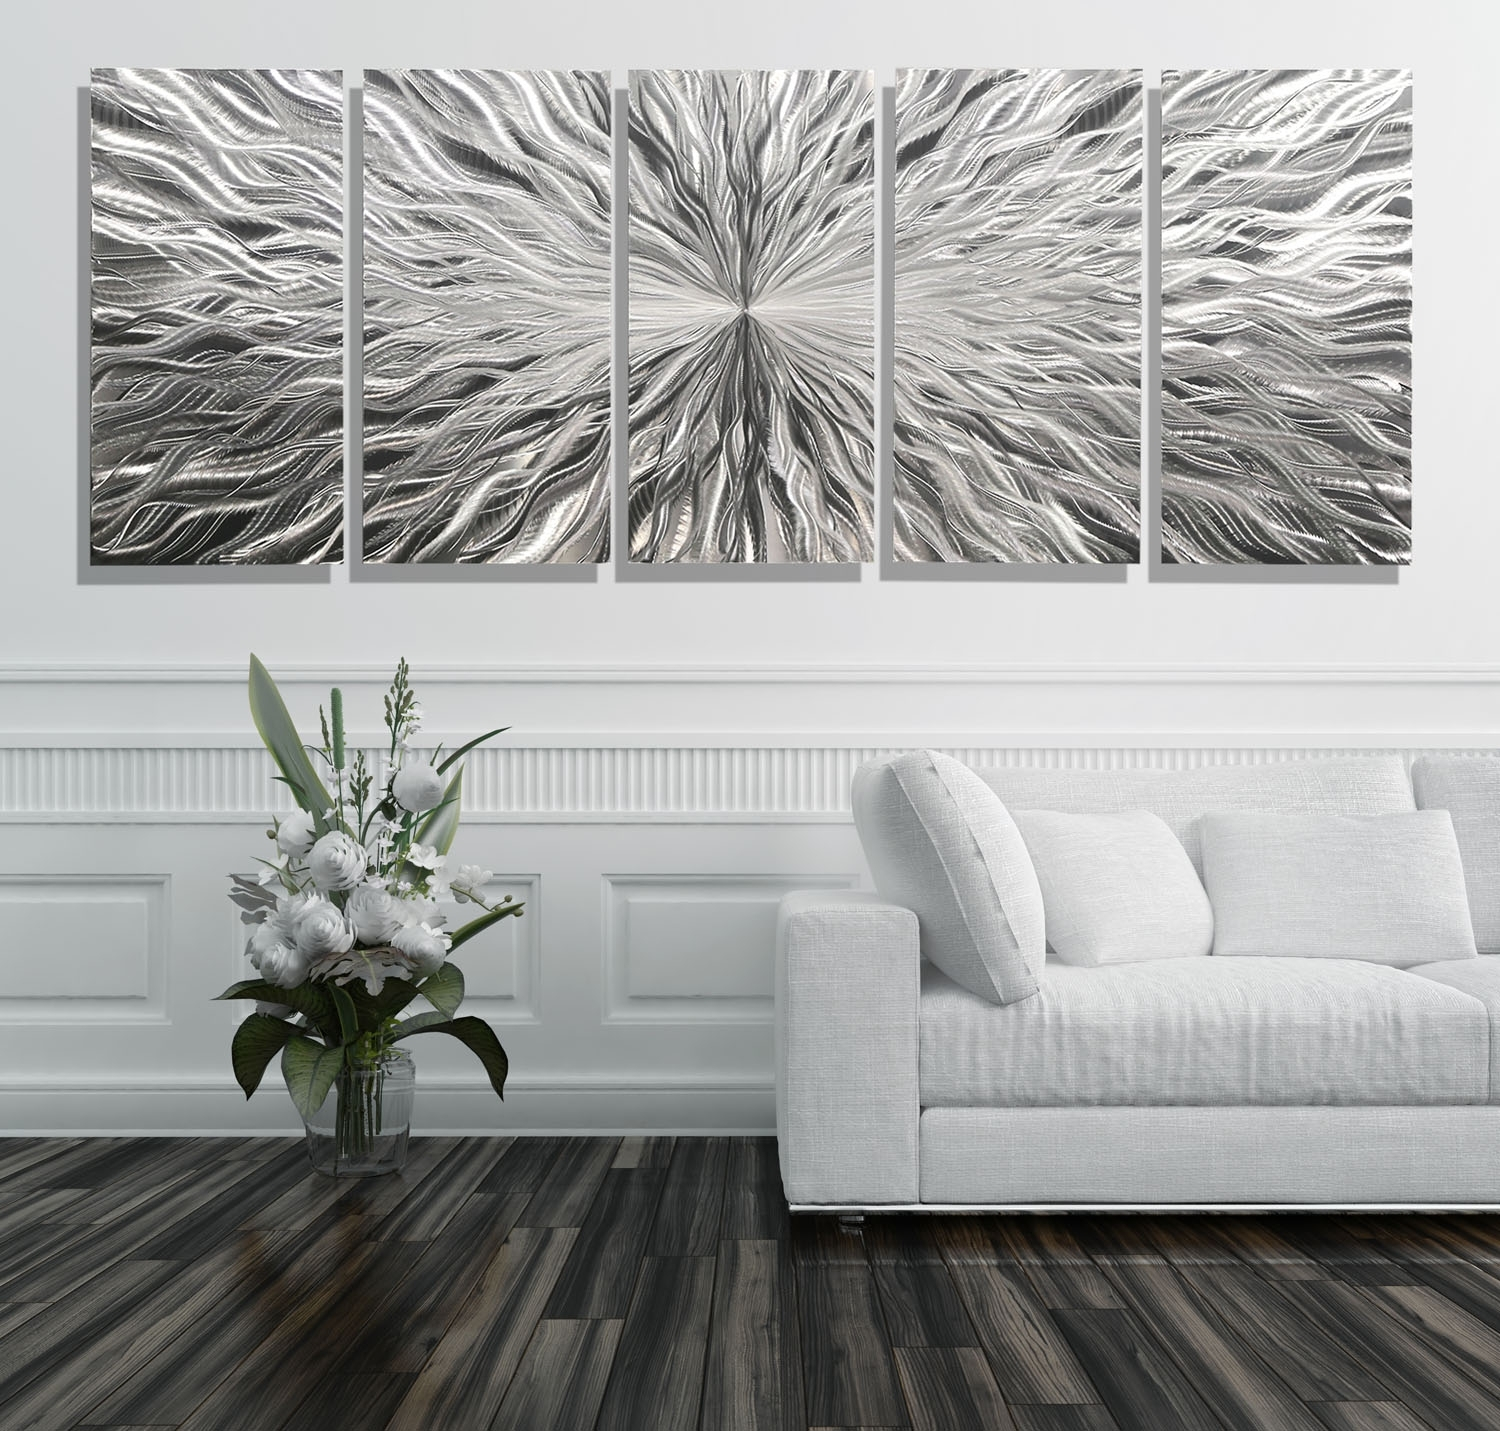 Vortex 5 Xl - Extra Large 5 Panel Modern Abstract Metal Wall Art for Most Current Extra Large Wall Art